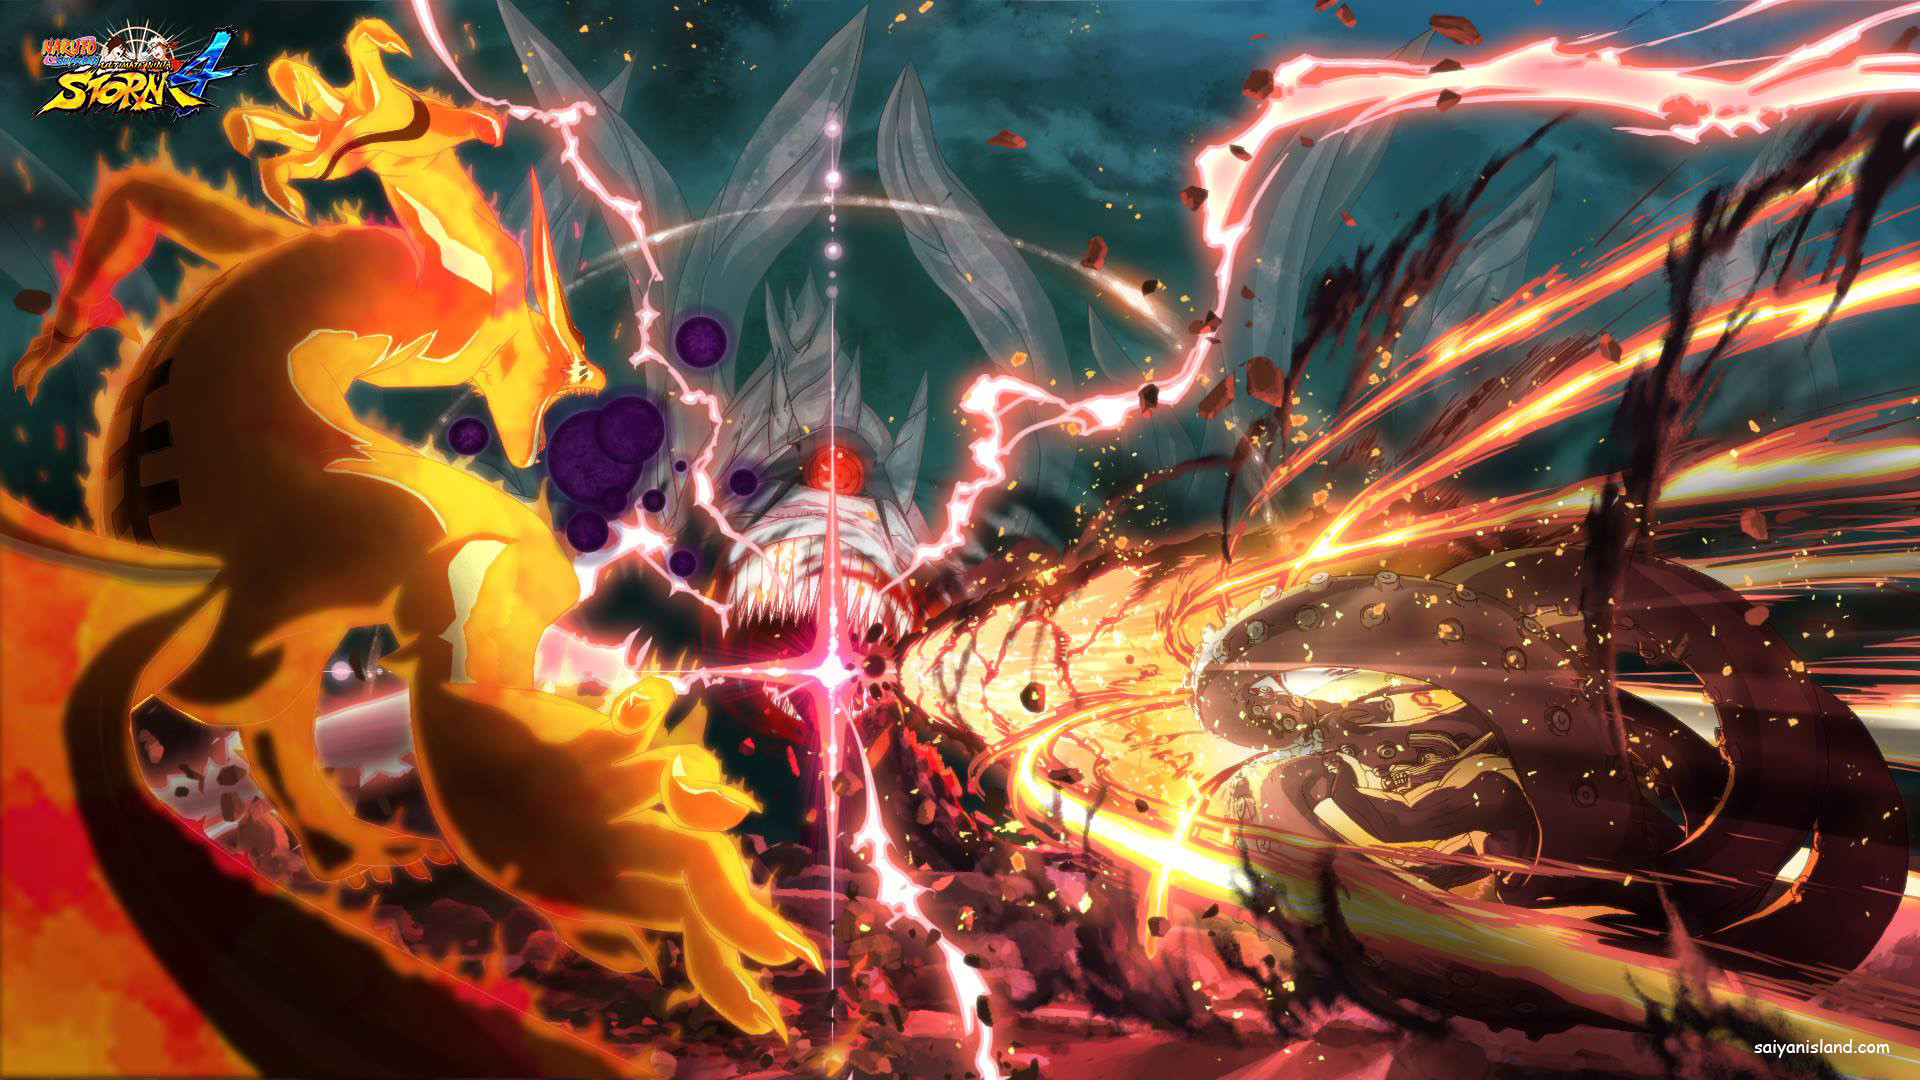 1920x1080 Video Game - Naruto Shippuden: Ultimate Ninja Storm 4 Video Game Nine Tails  Eight Tails